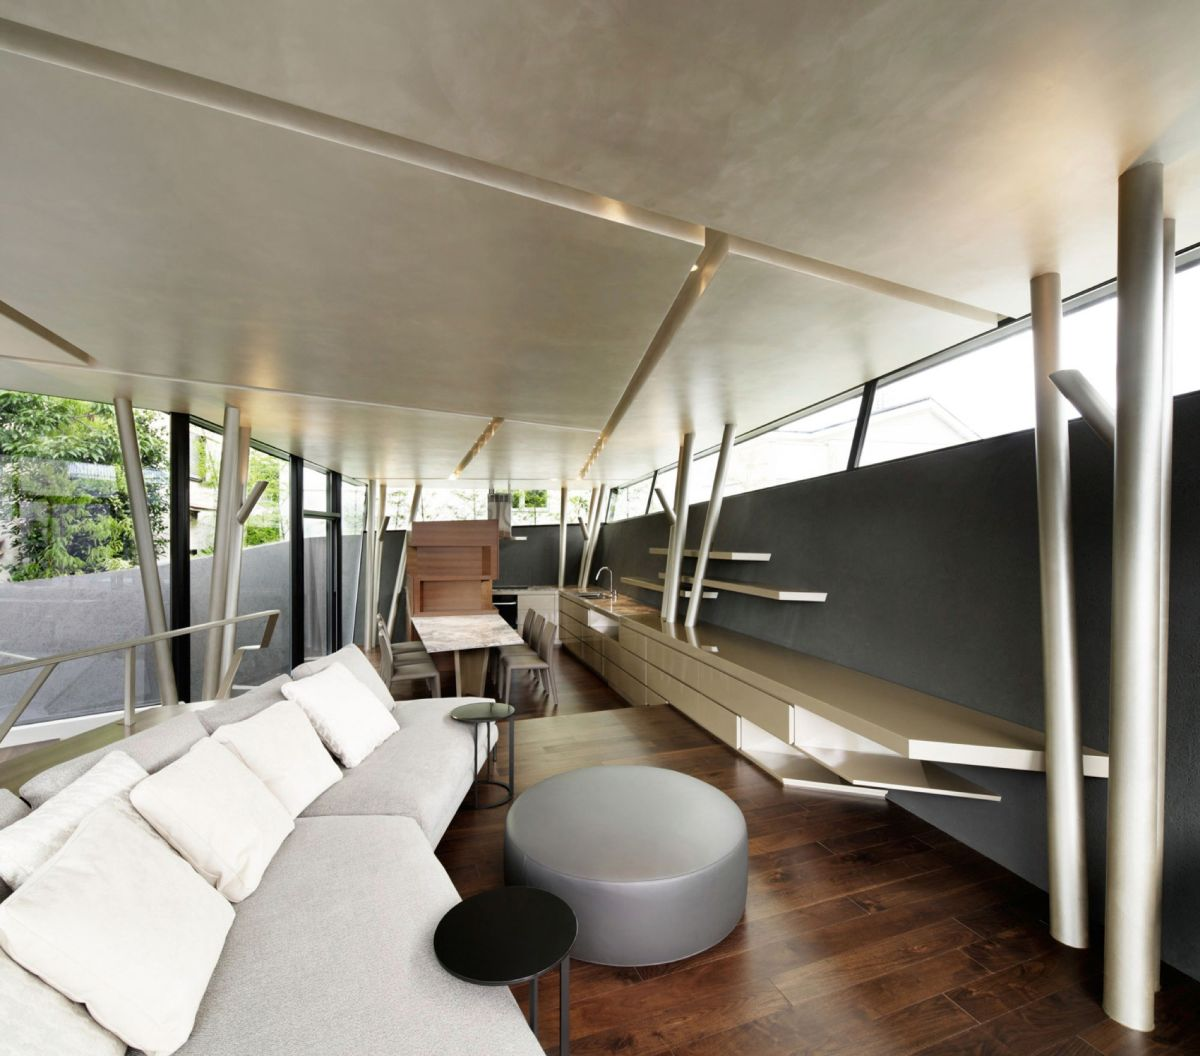 The SRK residence in Tokyo has embelled light fixtures in the ceiling